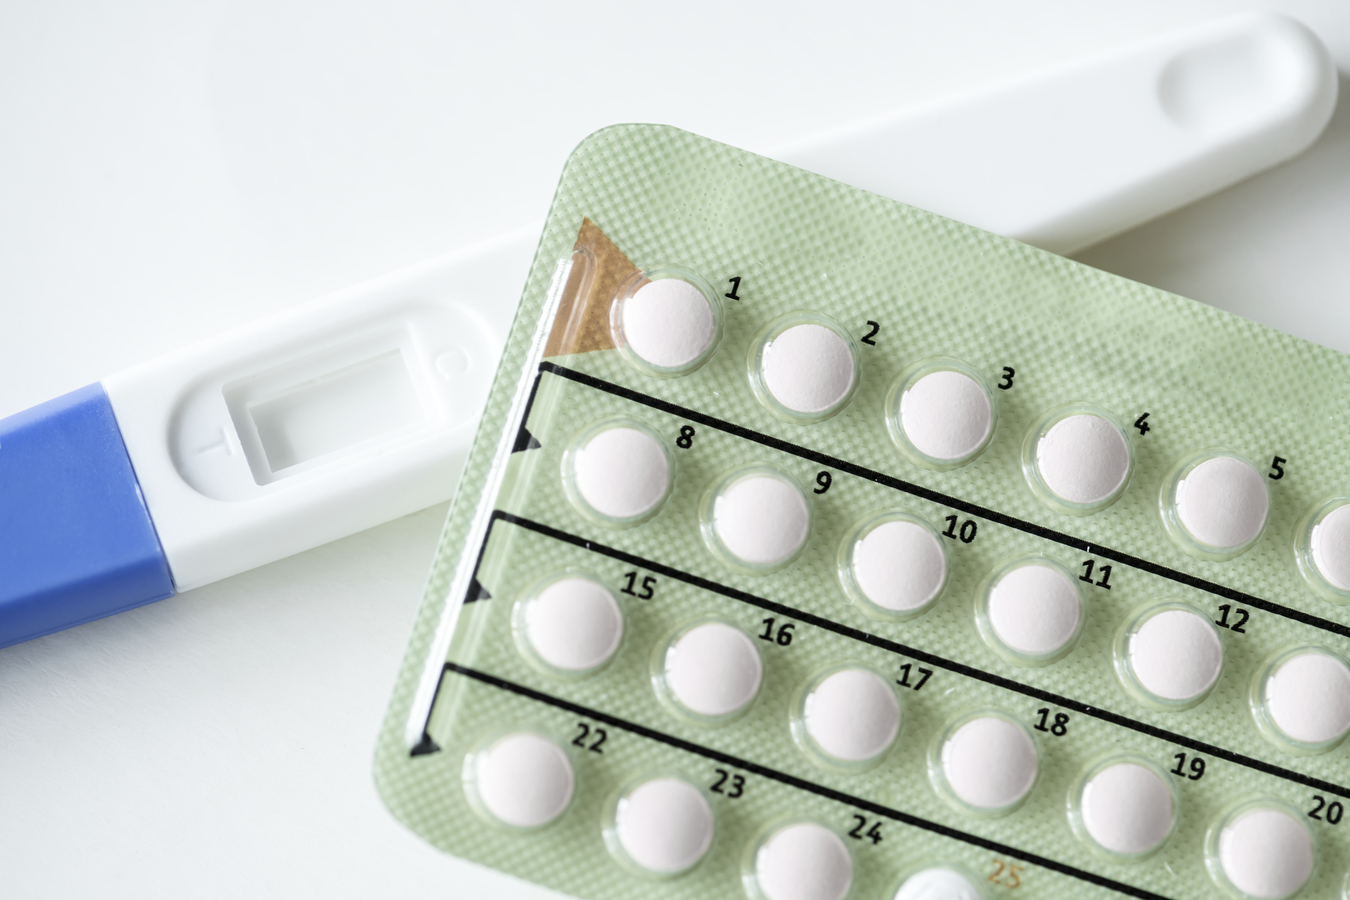 contraceptive birth control pill prescription in Manhattan